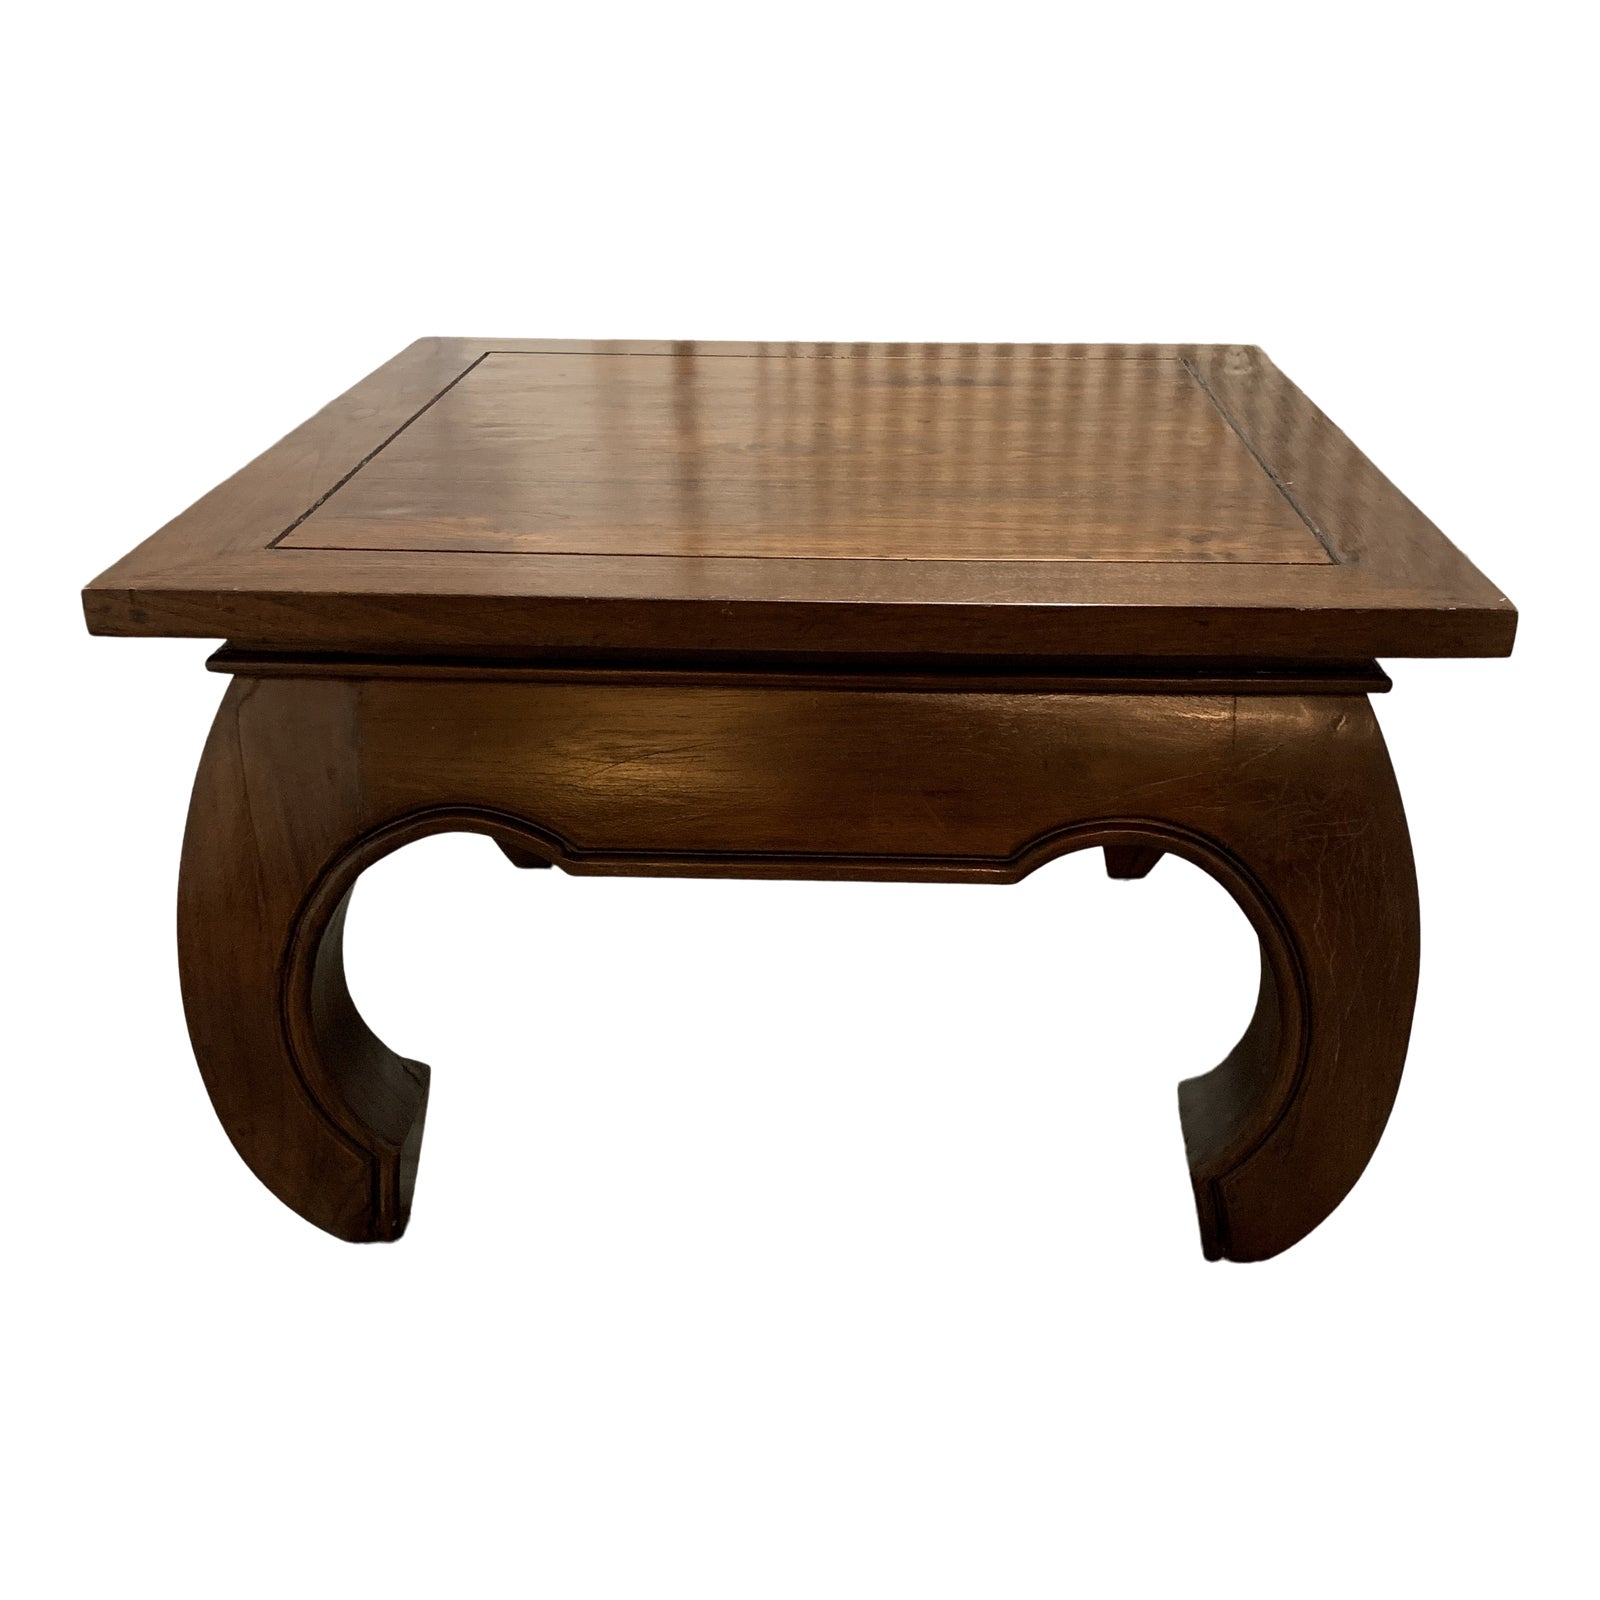 Summer Hill Asian Inspired Solid Wood Coffee Table | Design Plus Gallery